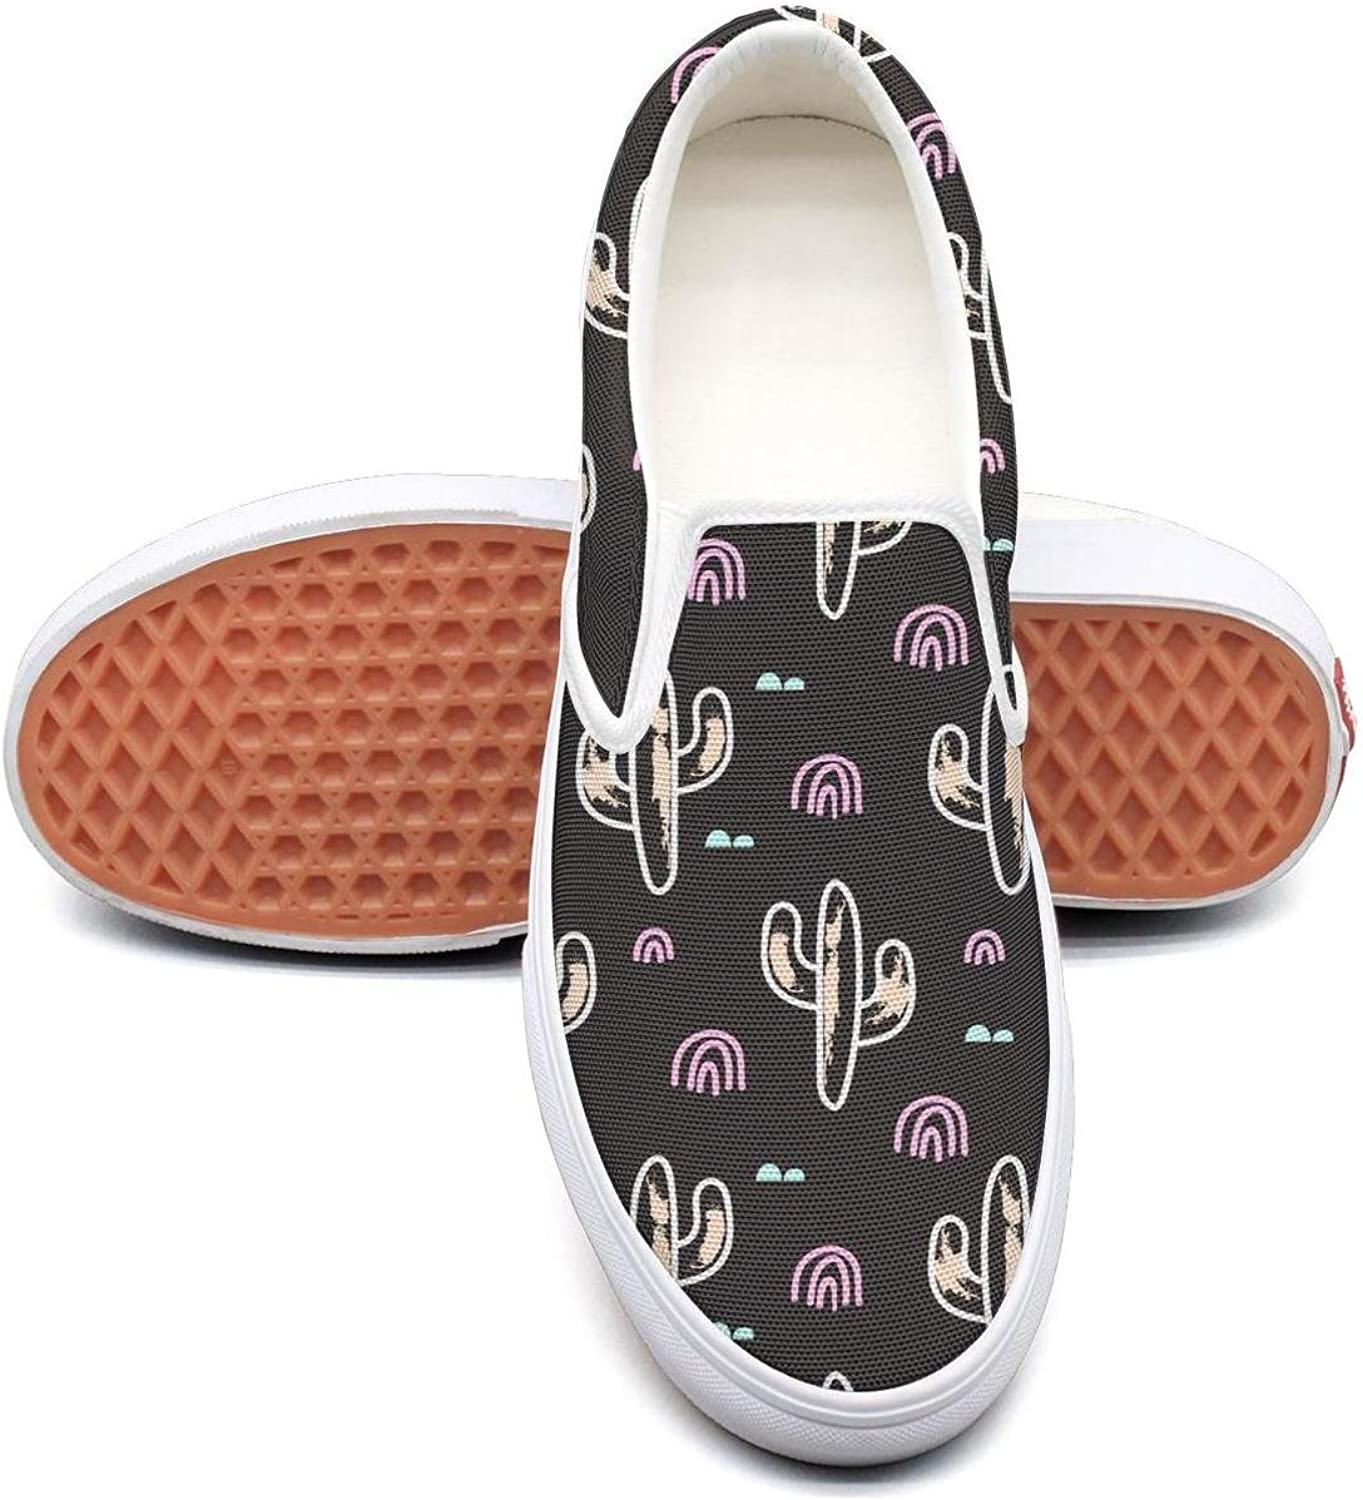 Cactus Pattern Slip on Superior Comfort Loafers Canvas shoes for Women Round Toe